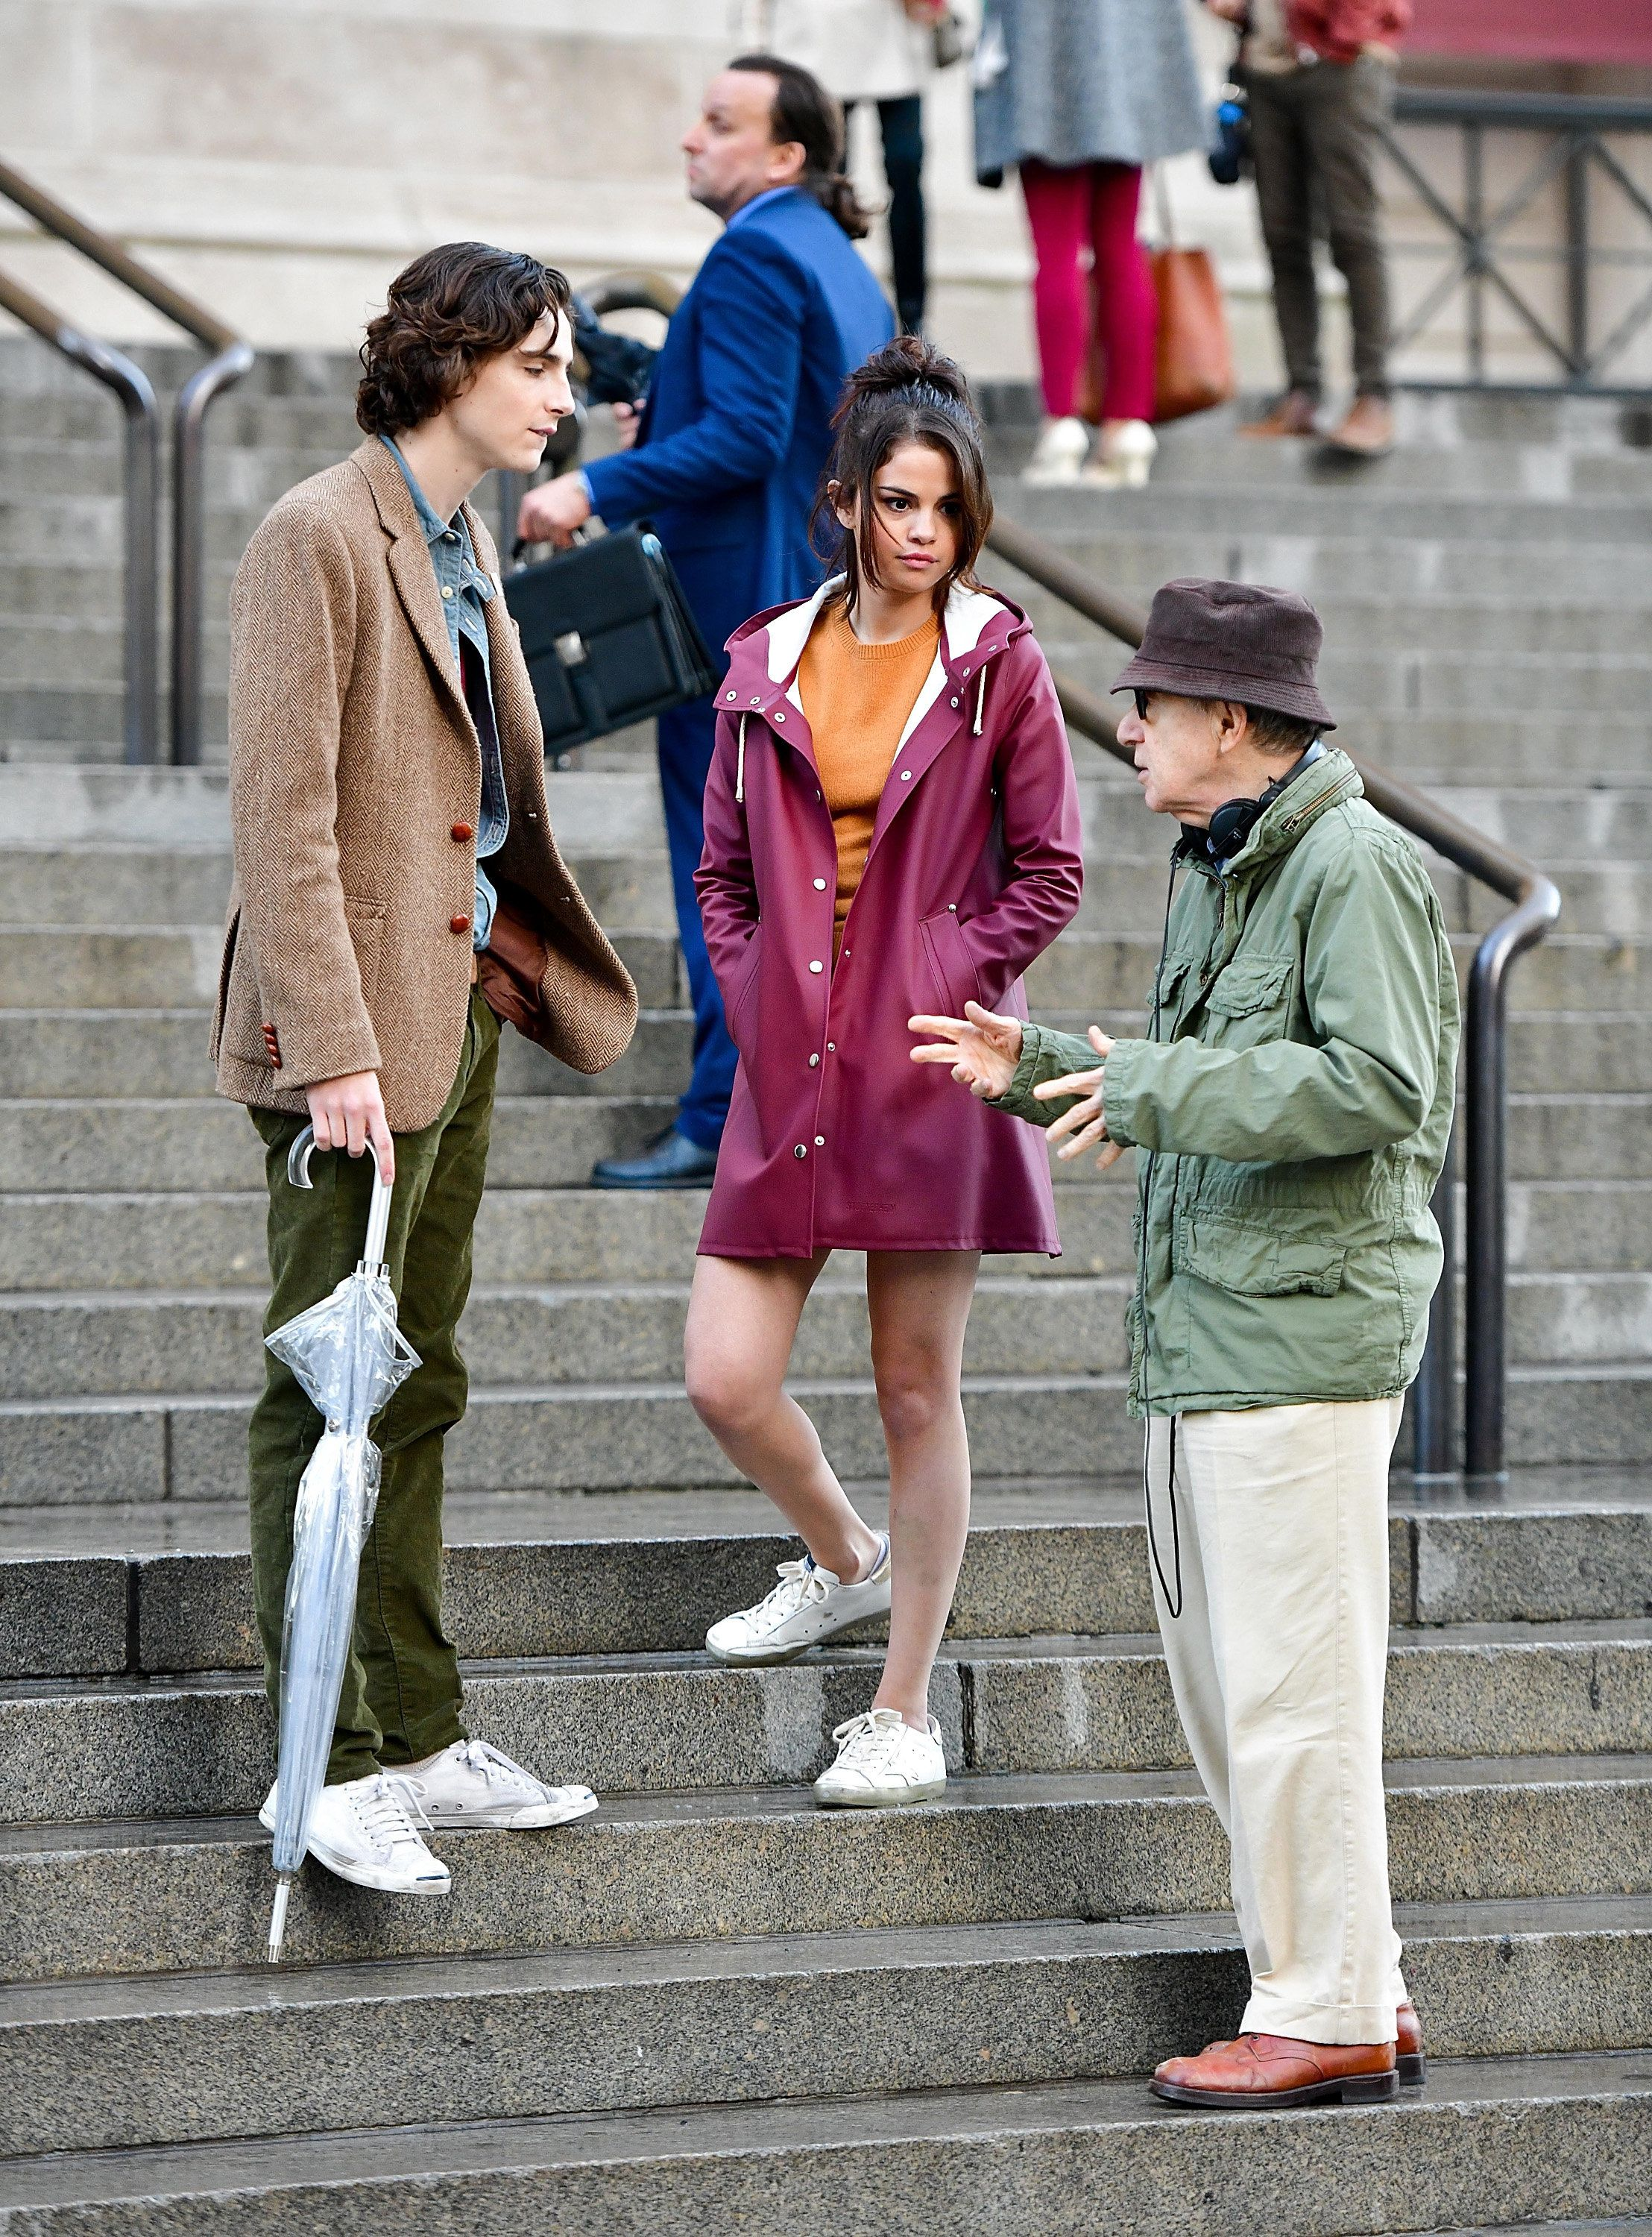 Timothée Chalamet, Selena Gomez and Woody Allen on set.